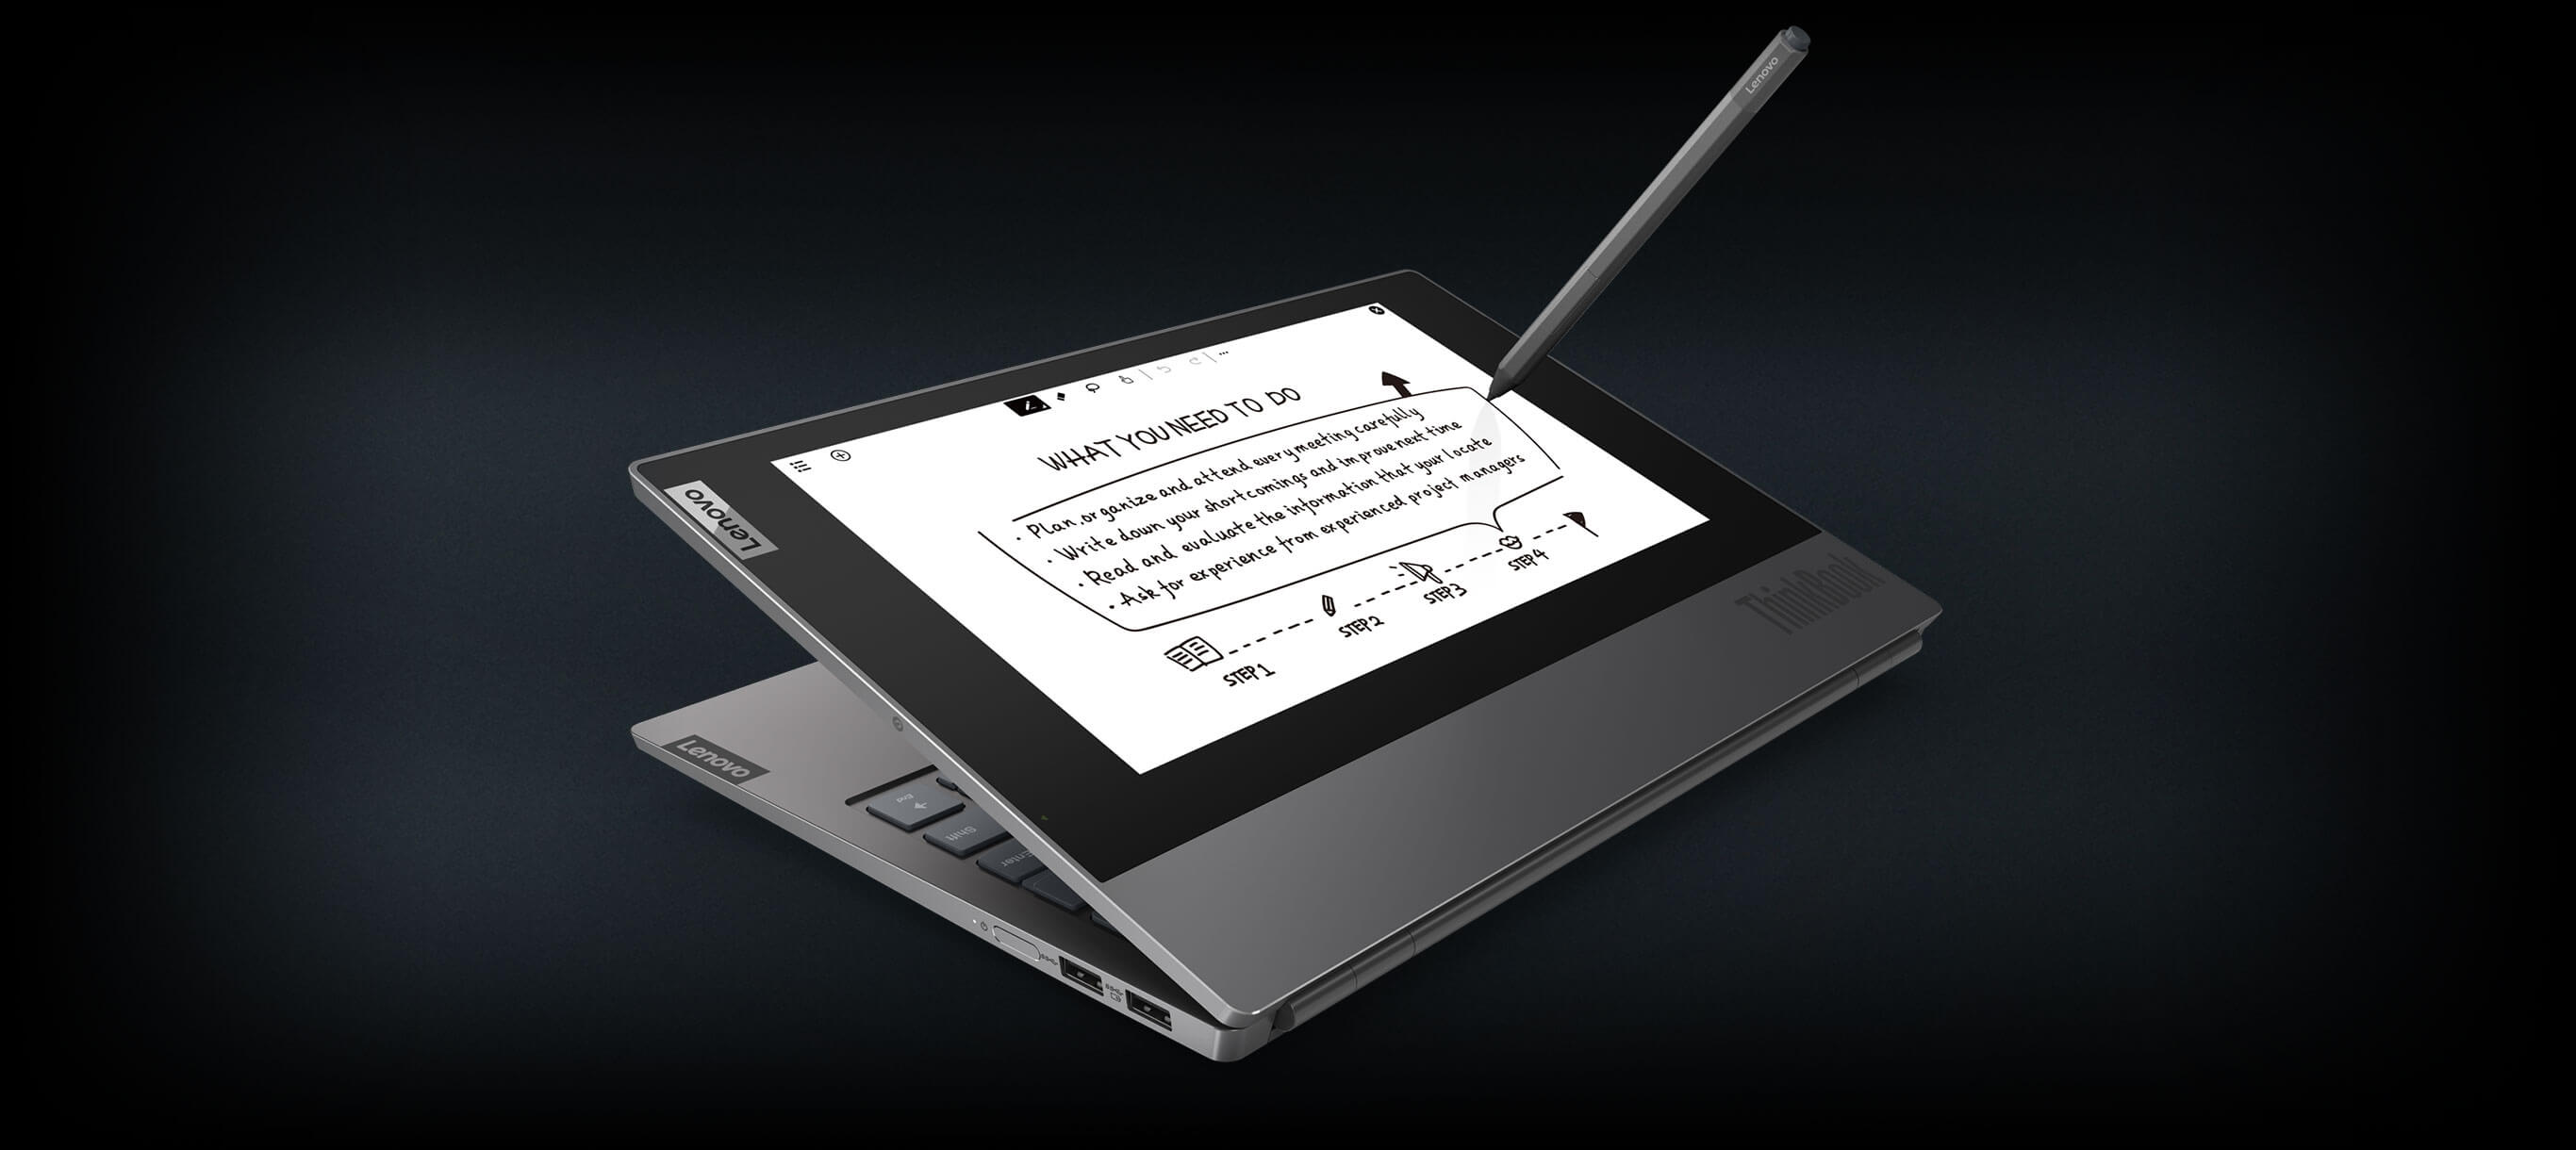 thinkbook plus tablet screen with pen